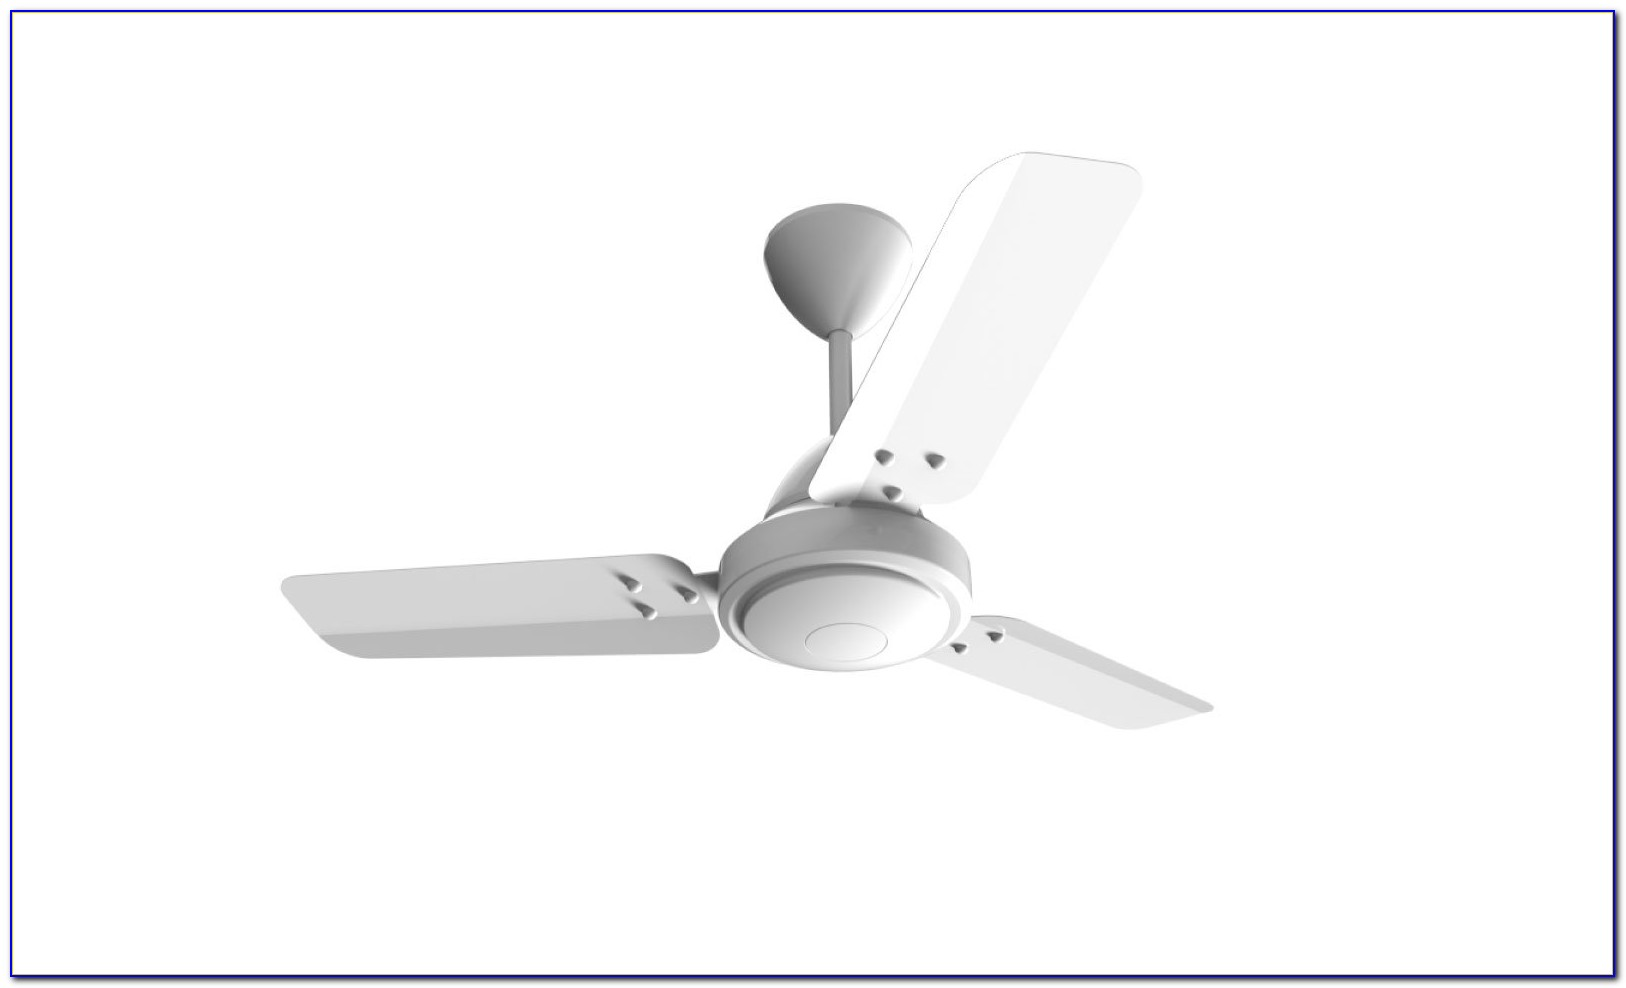 Are Ceiling Fans More Energy Efficient Than Air Conditioners